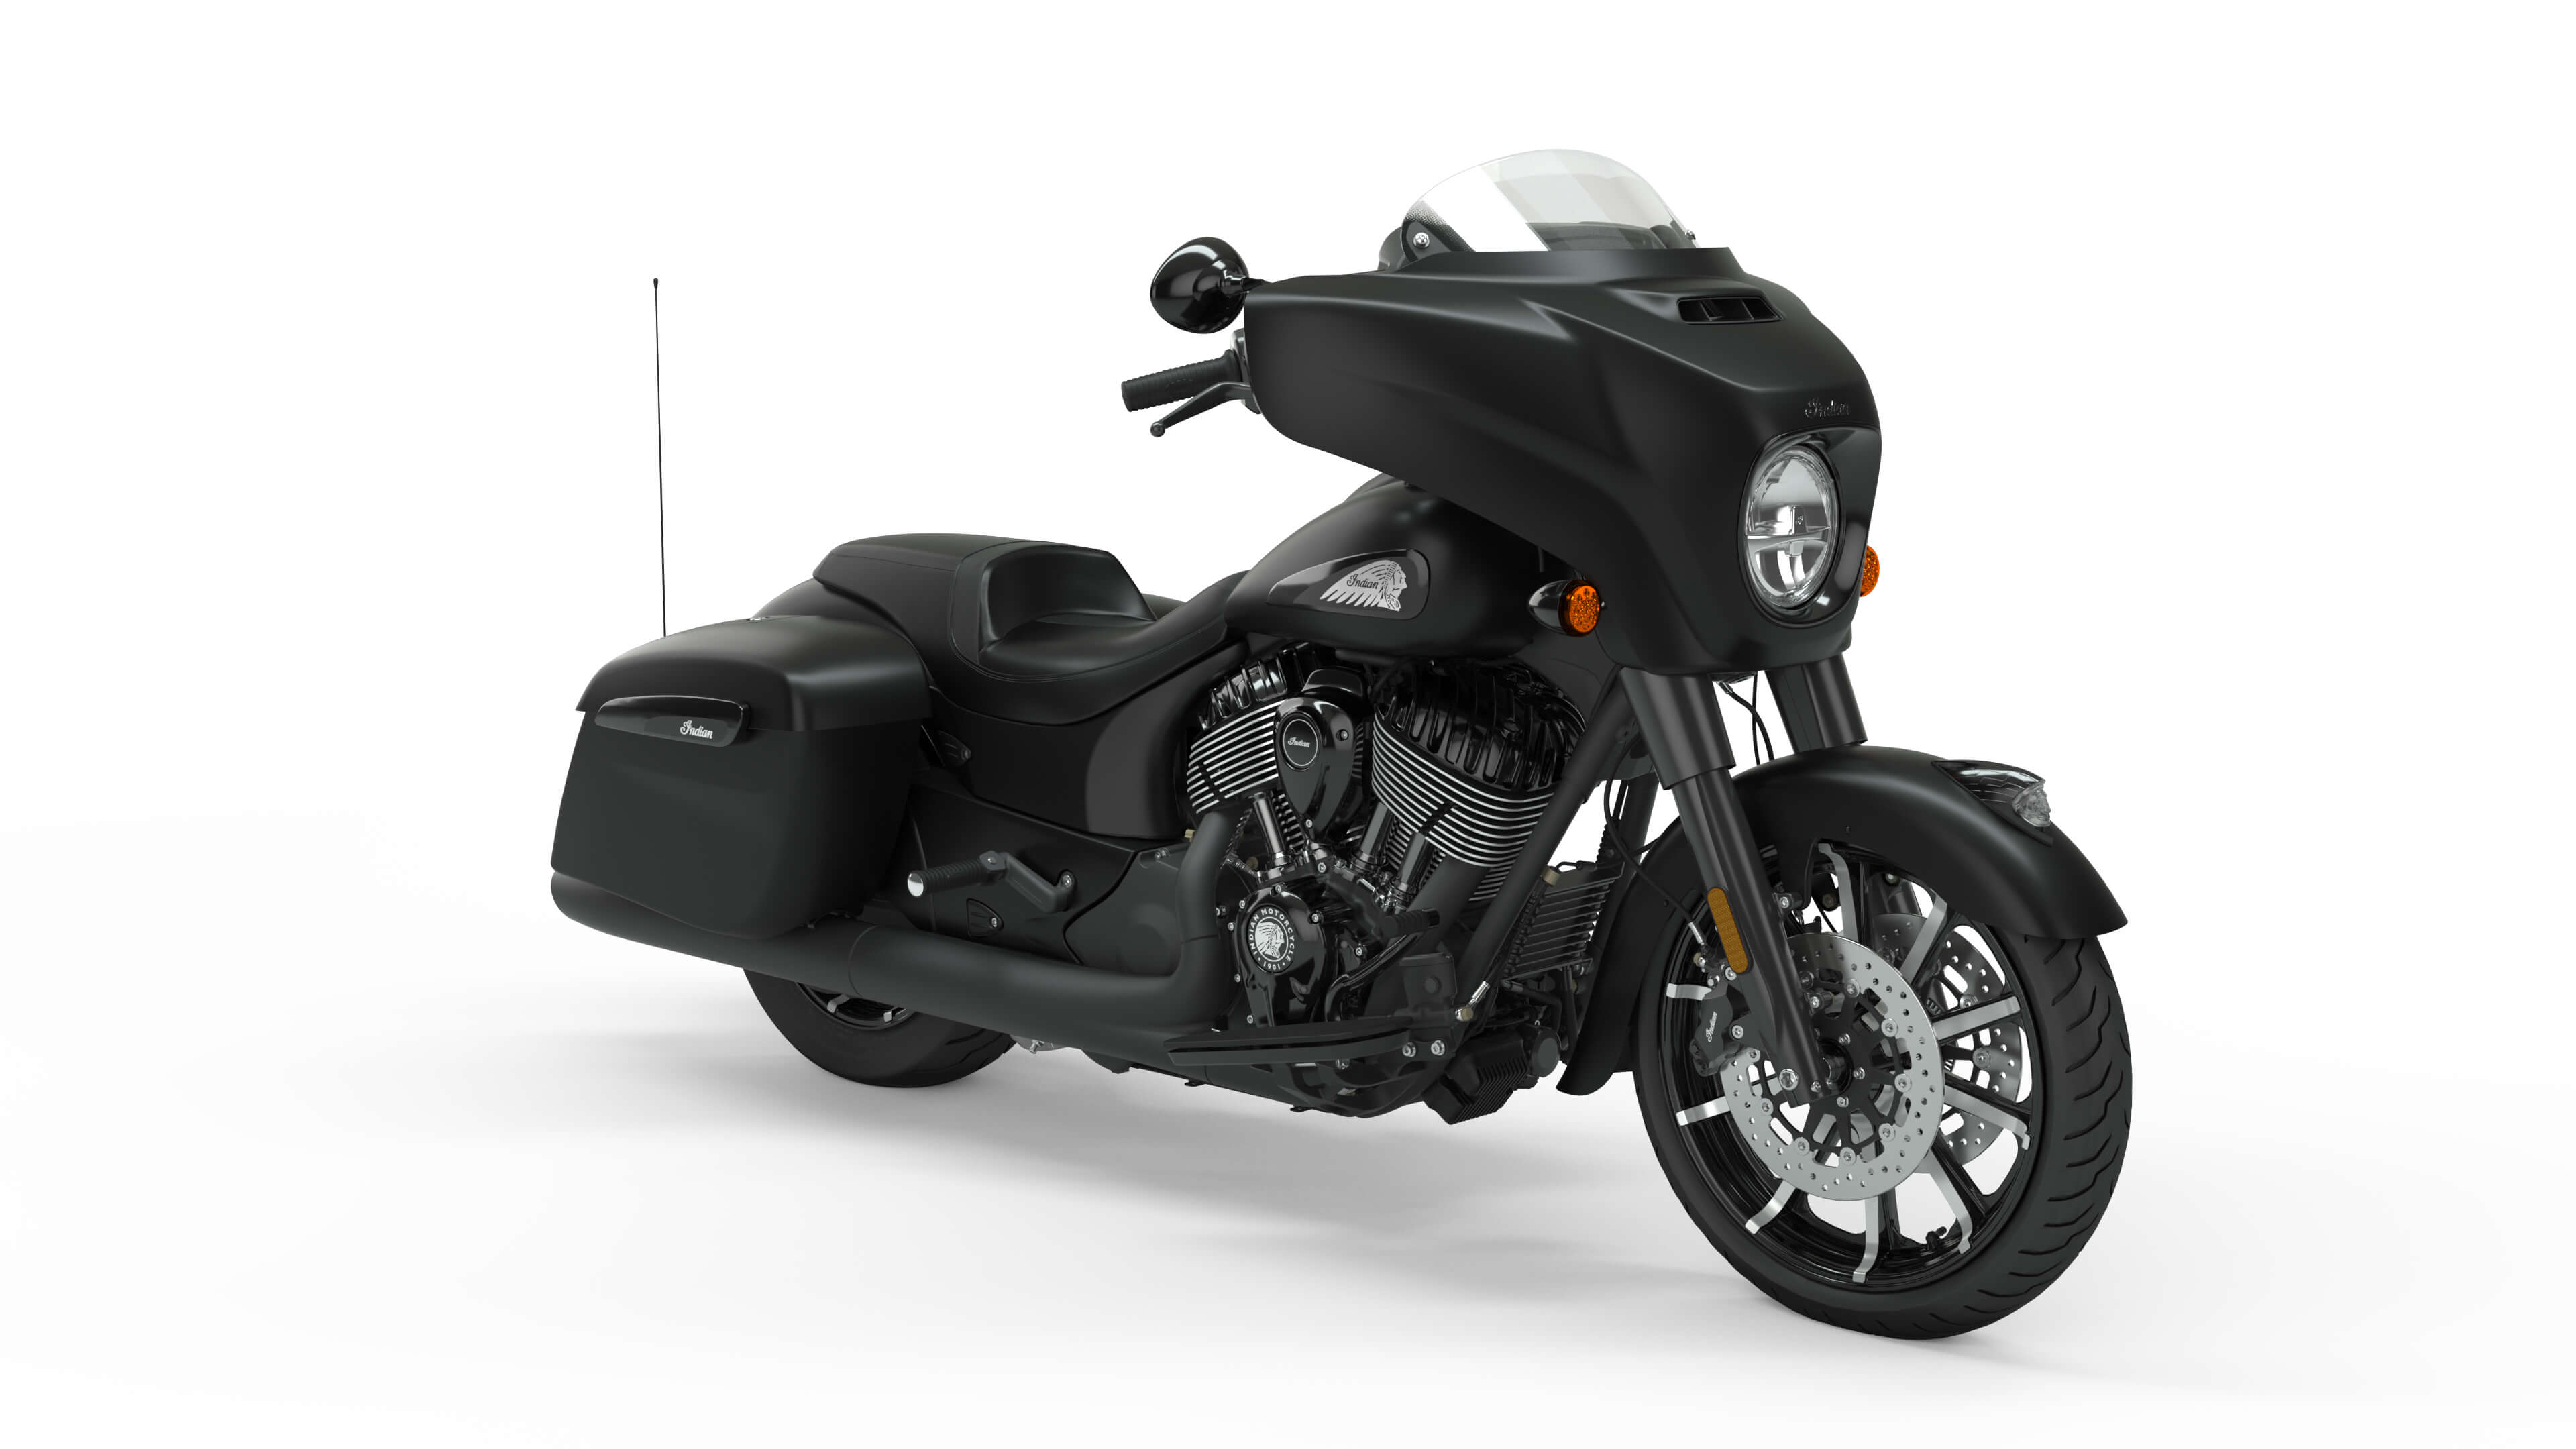 INDIAN® CHIEFTAIN DARK HORSE®